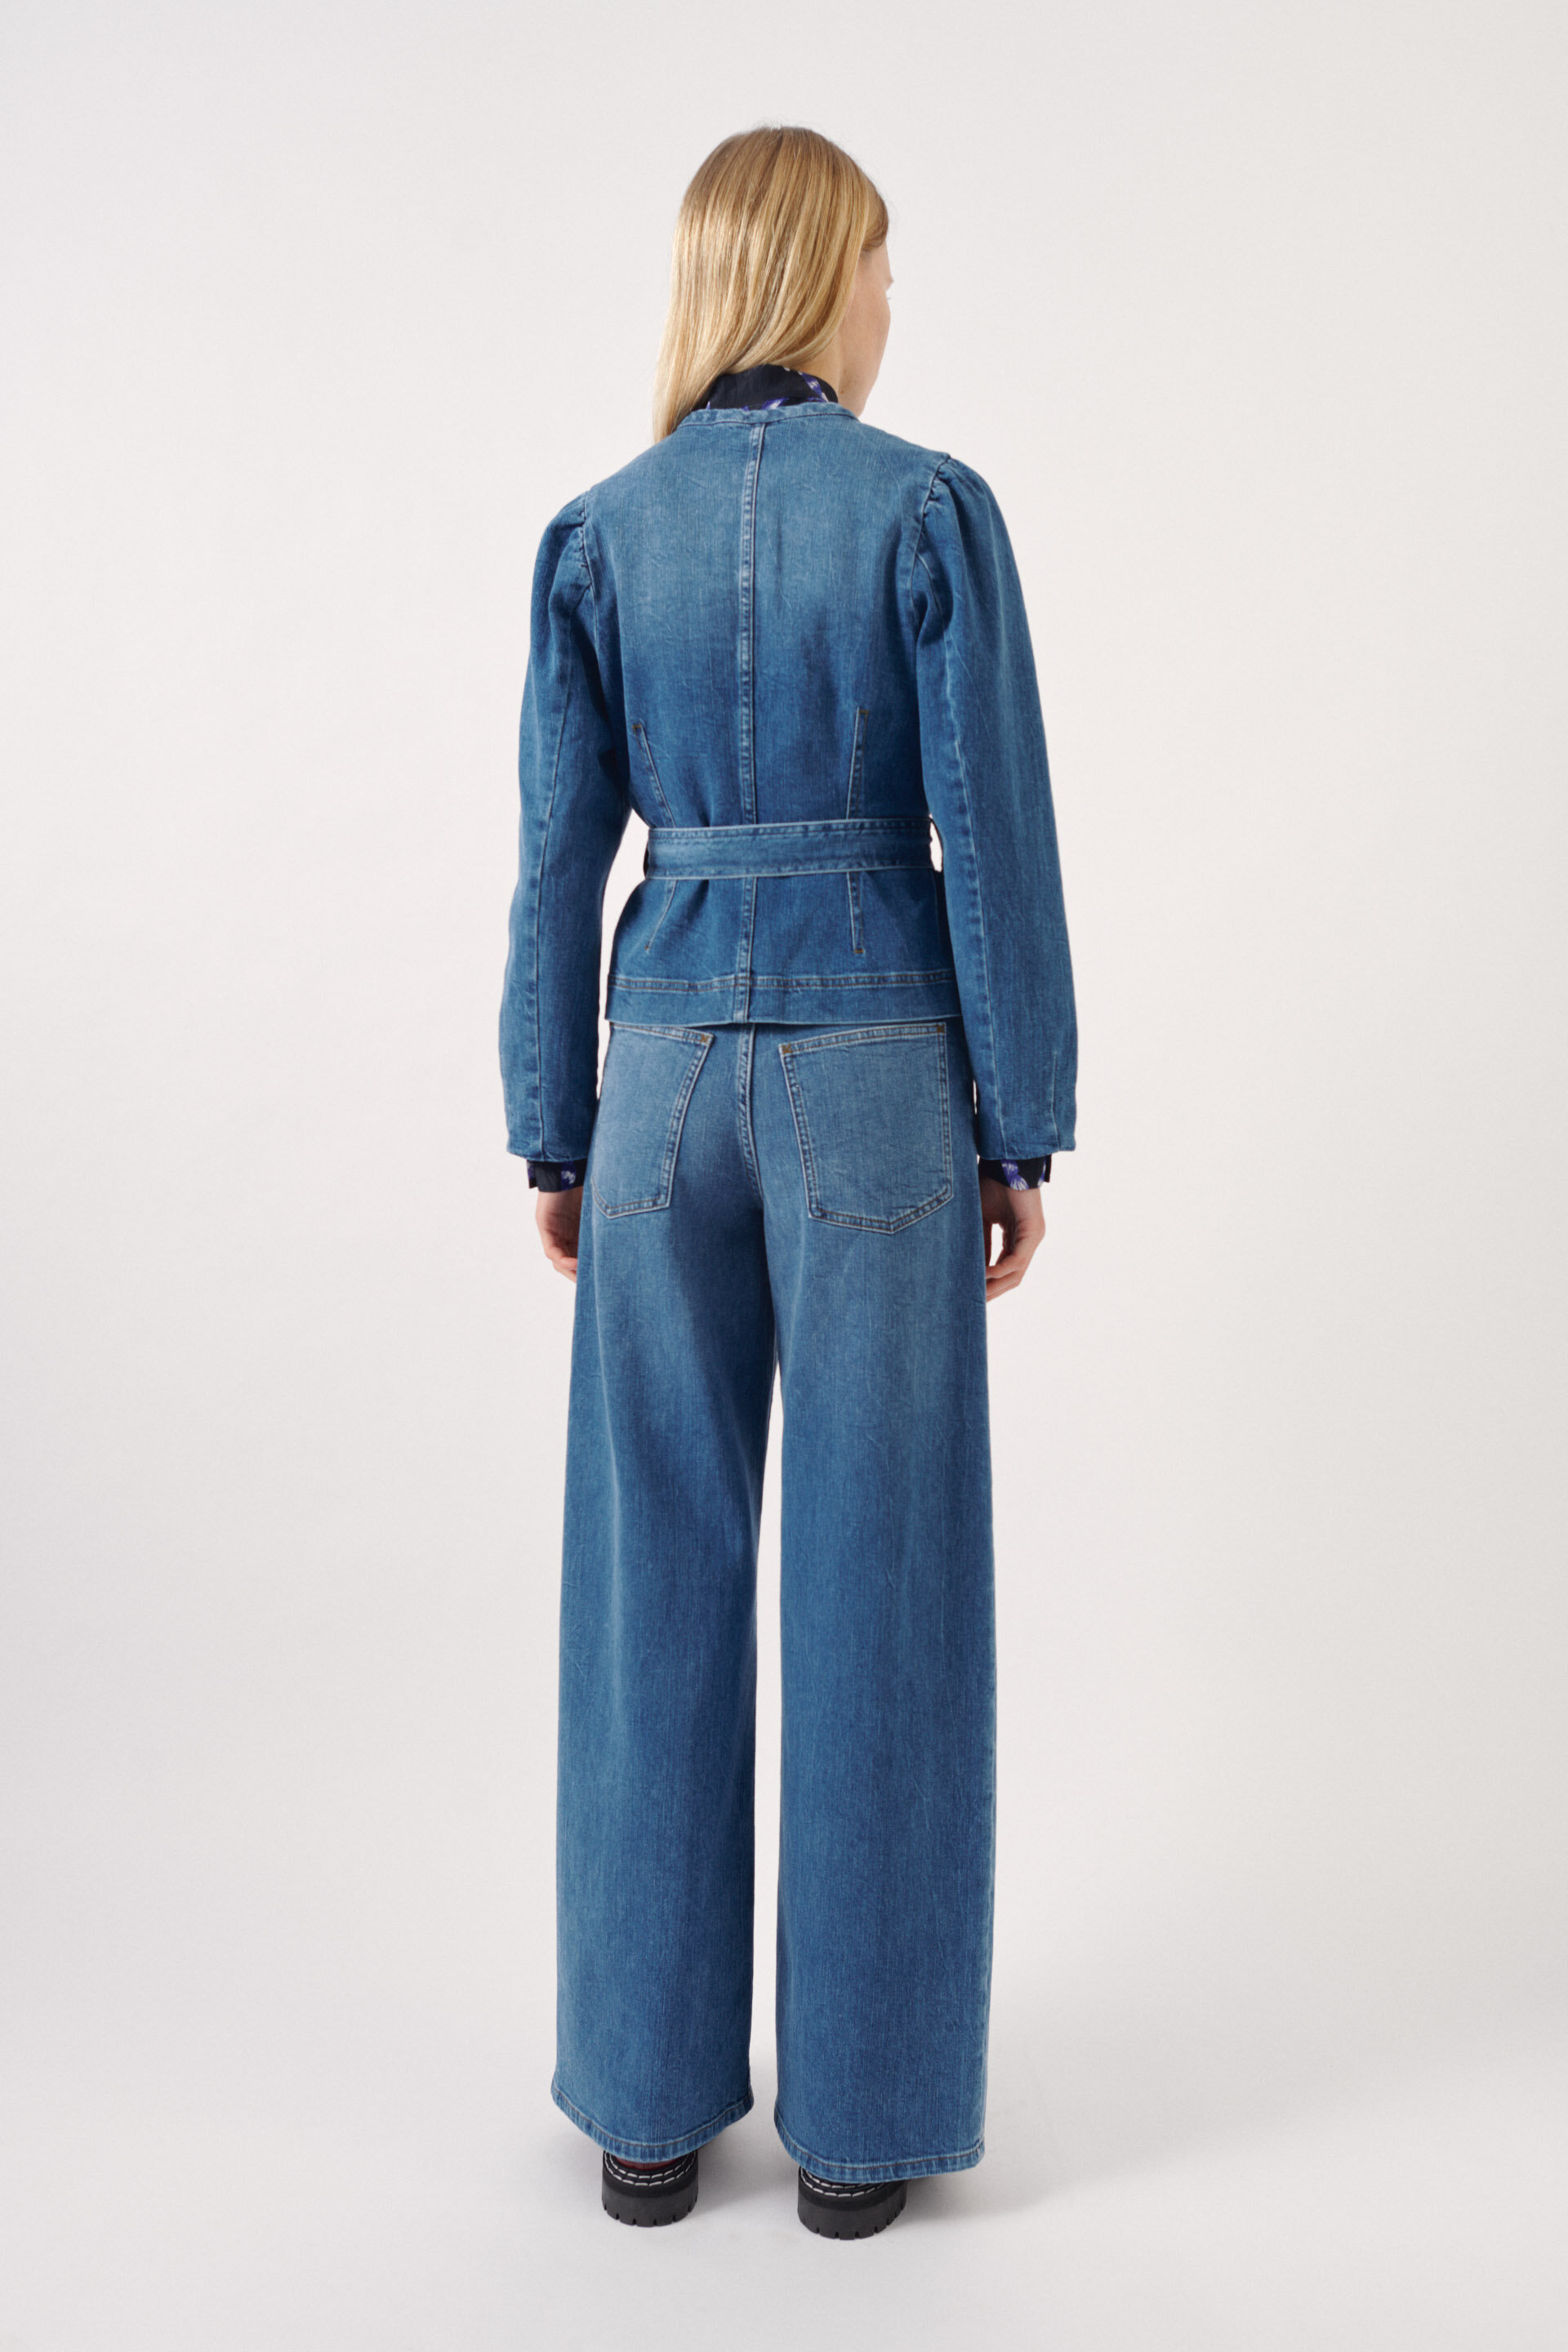 Balzak Jacket Blue Washed Denim This structured denim jacket features button closures down the front, gently puffed shoulders, and a tie belt at the waist - detail image